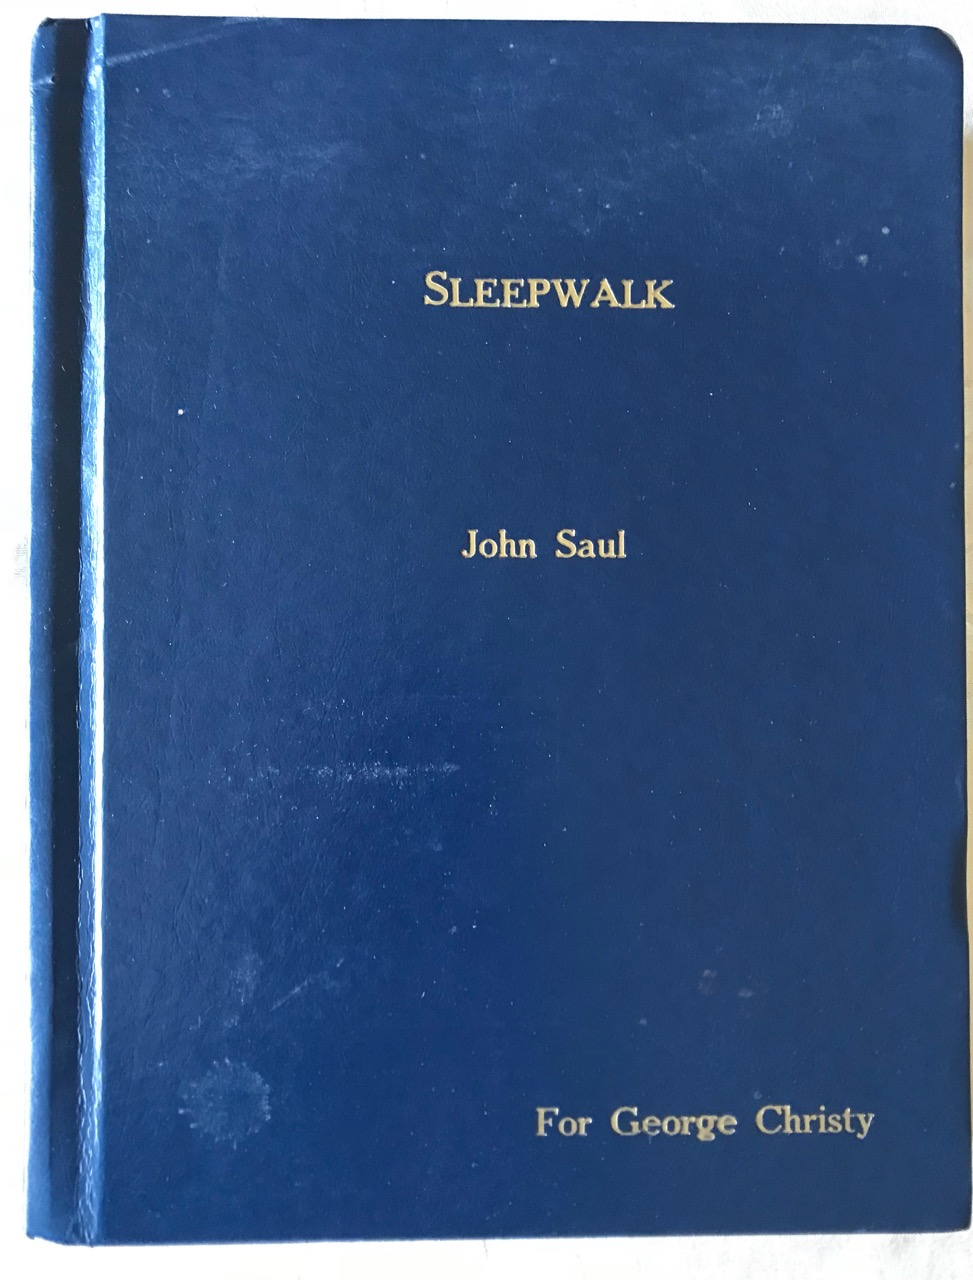 Image for Sleepwalk [Limited, signed hardbound edition]